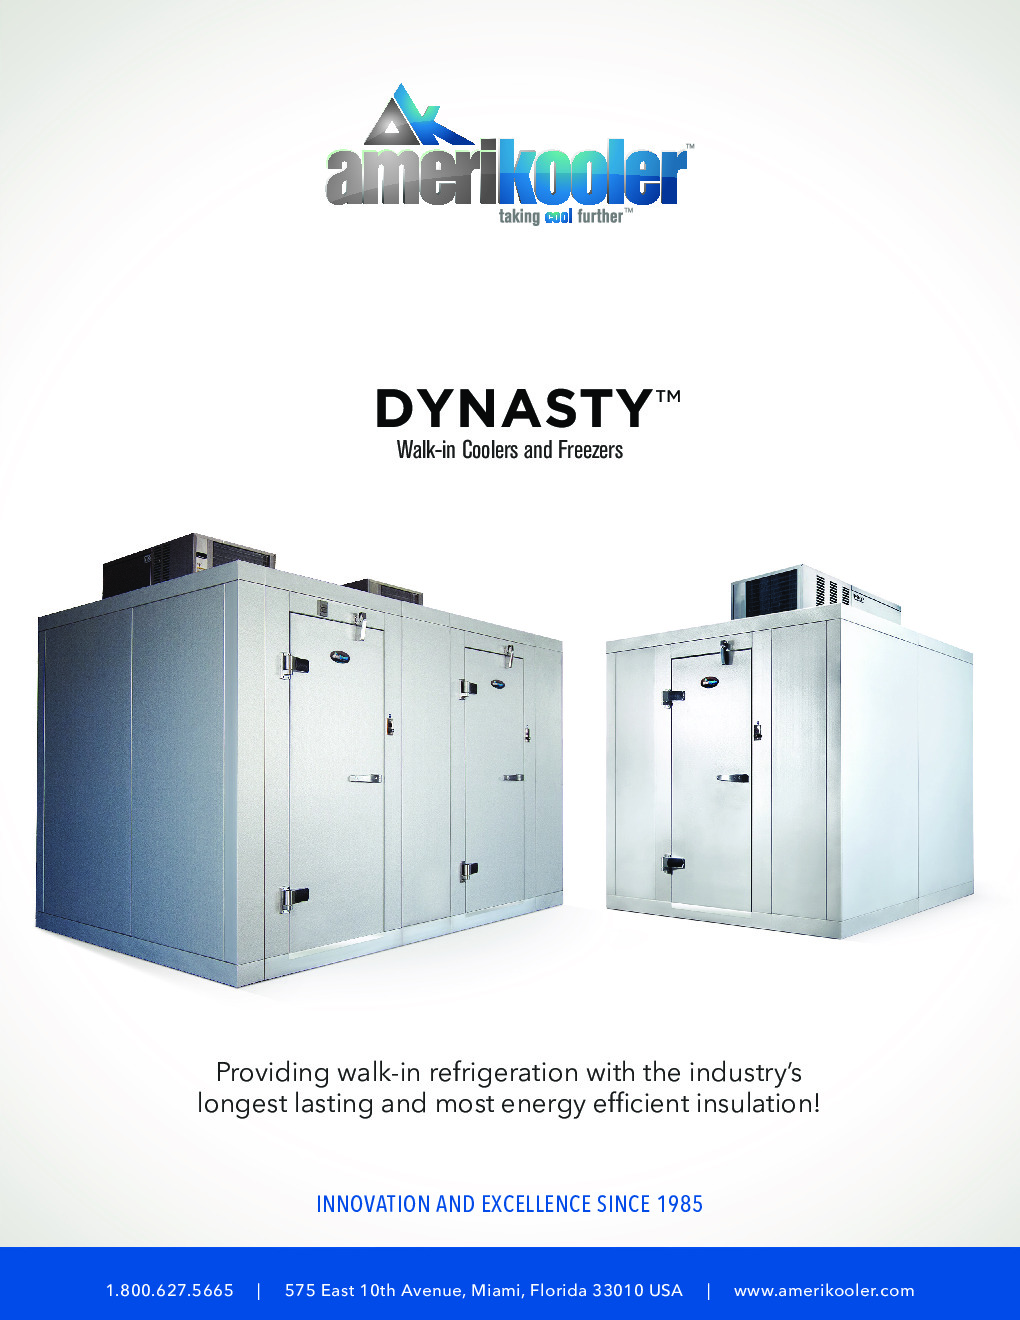 AmeriKooler DW061477F-5/9 Indoor 6' X 14' Walk-In, 9' L Cooler with Floor and 5' L Freezer, Box Only